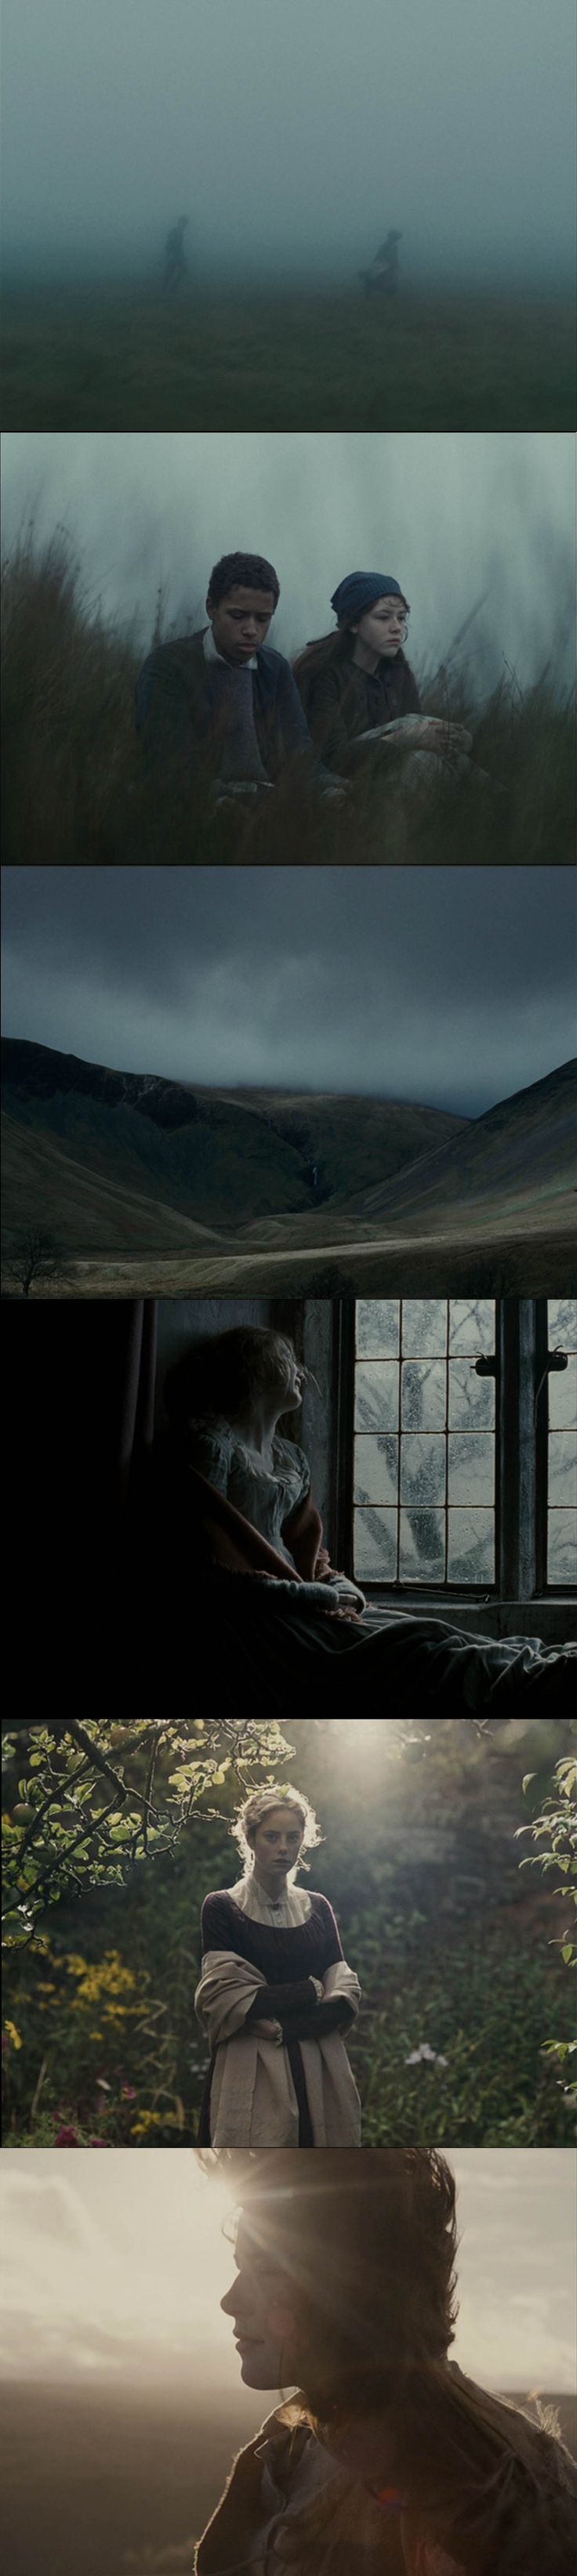 Withering Heights (Andrea Arnold, 2011) DoP: Robbie Ryan Sources: film-grab.com, bluray.com